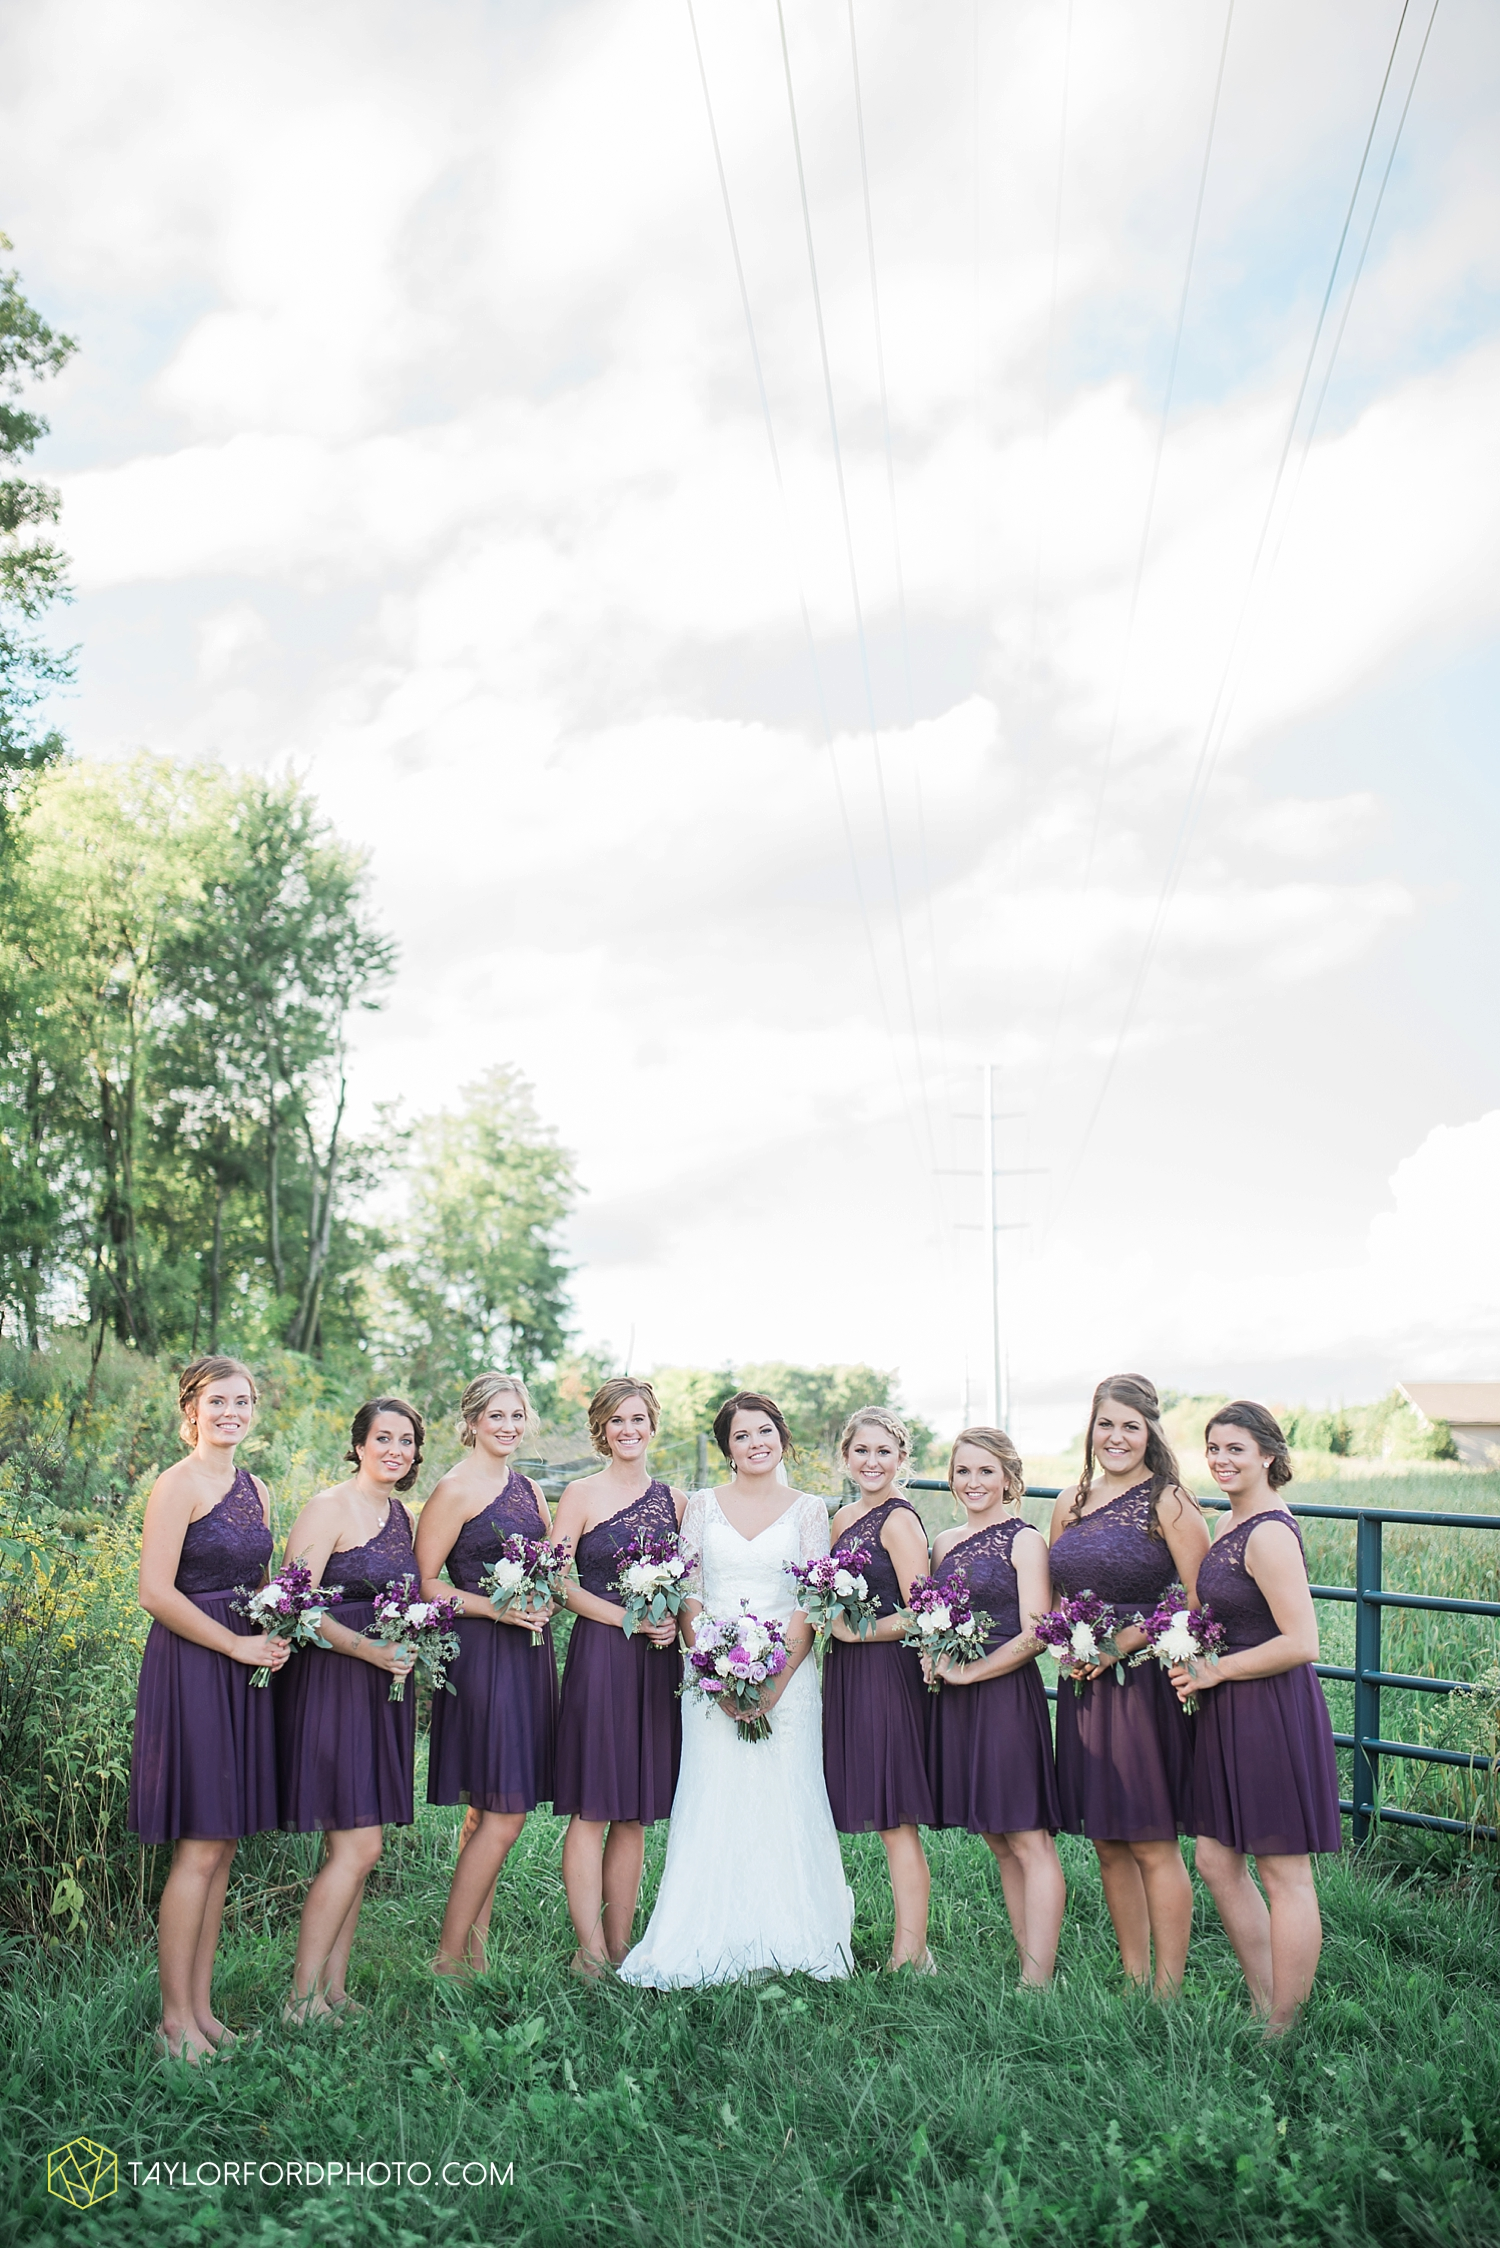 van_wert_ohio_fort_wayne_indiana_wedding_photographer_taylor_ford_cerutis_catering_2827.jpg